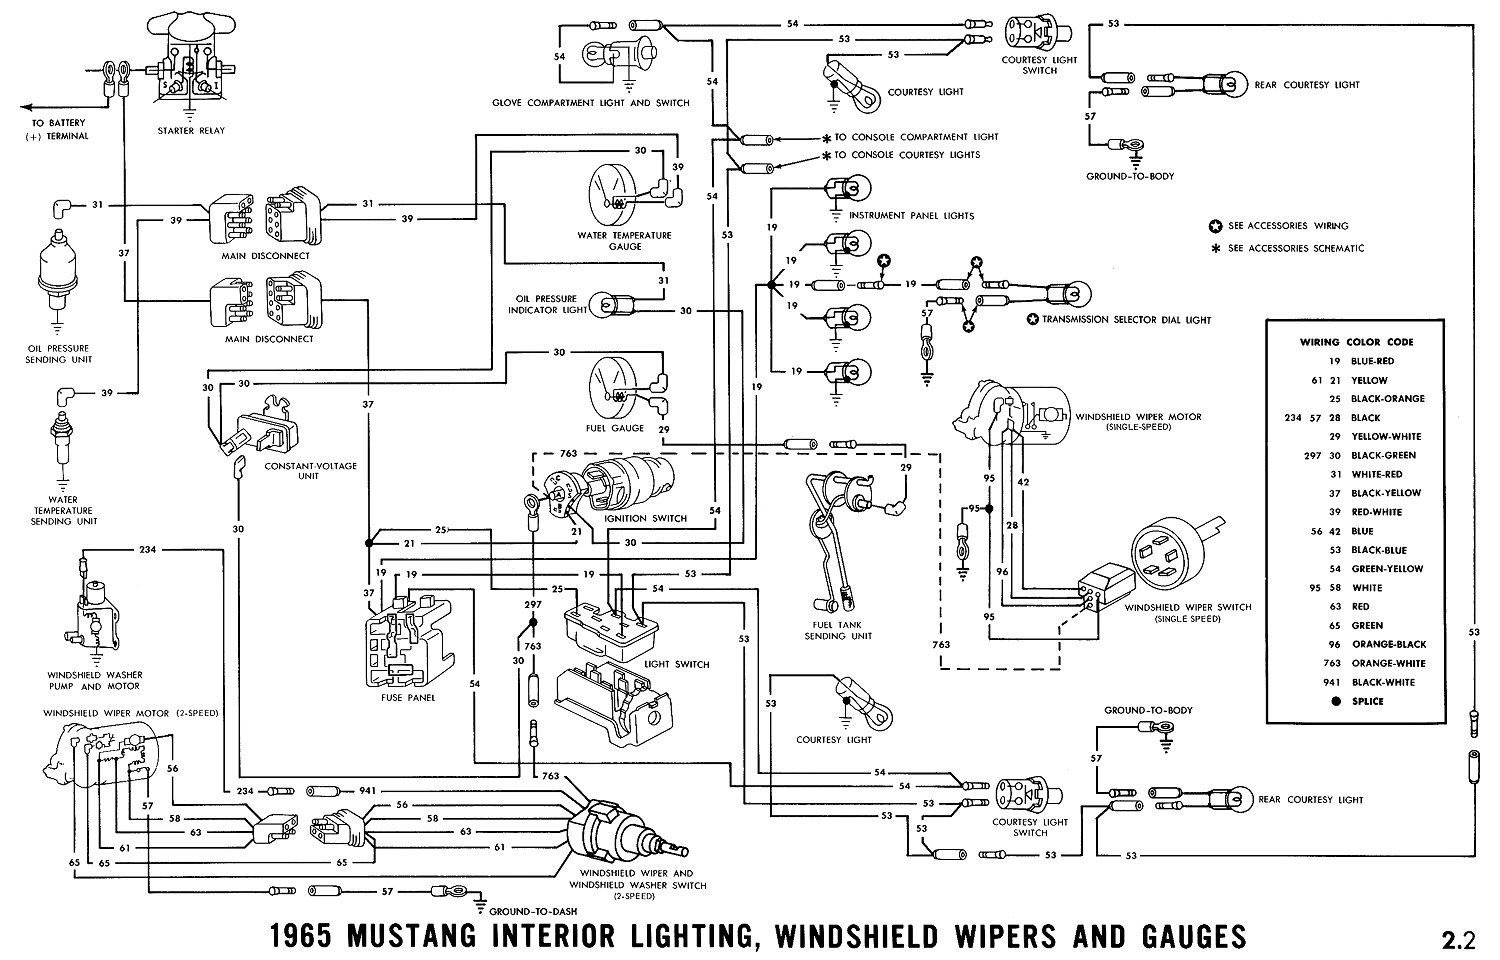 1965g wiring diagram fuel gauge manual fuel gauge brochure \u2022 wiring Universal Hot Rod Wiring Harness at reclaimingppi.co